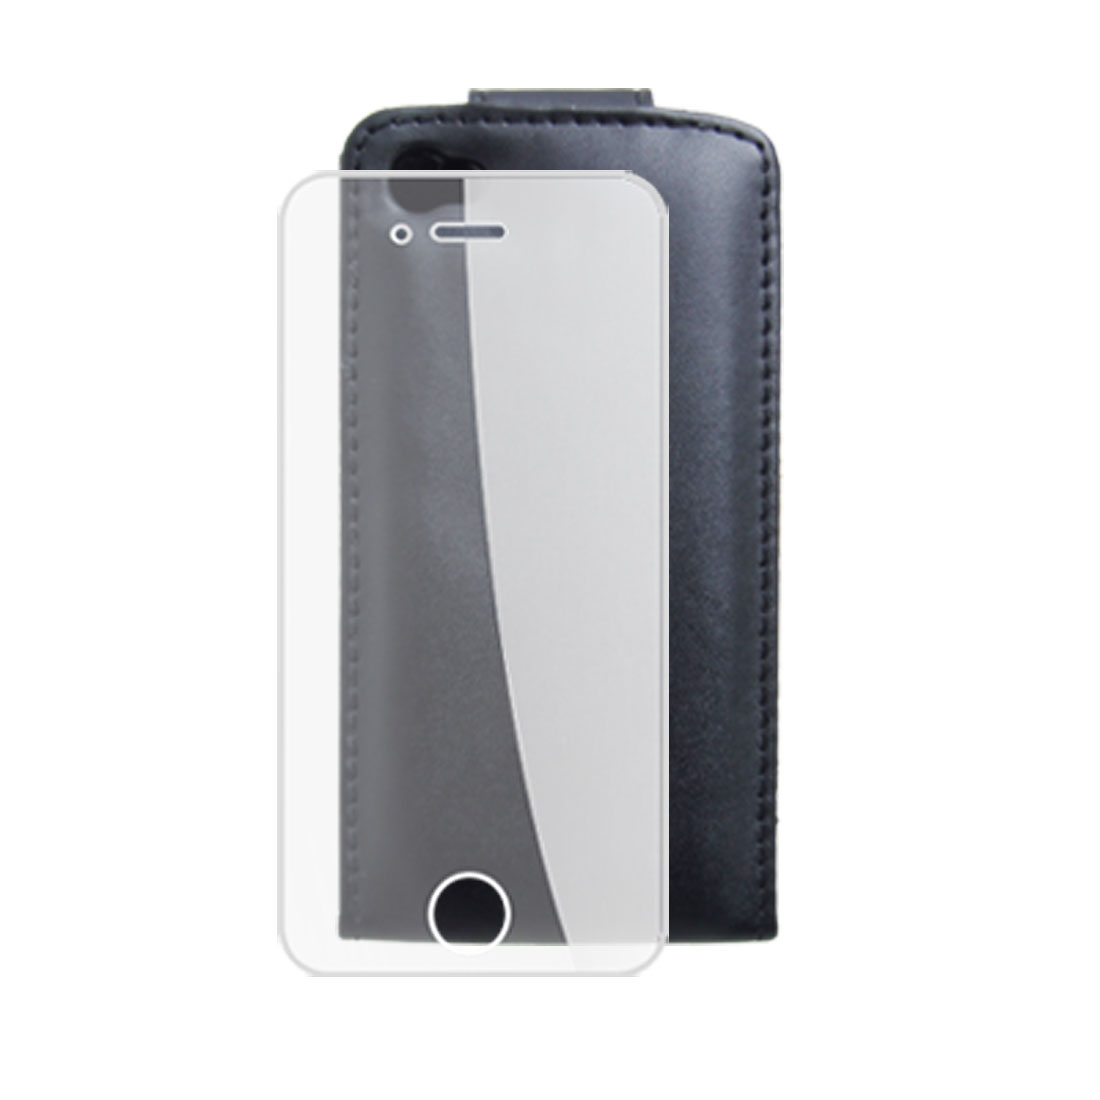 Black Faux Leather Pouch Case + Screen Guard for iPhone 4 4G